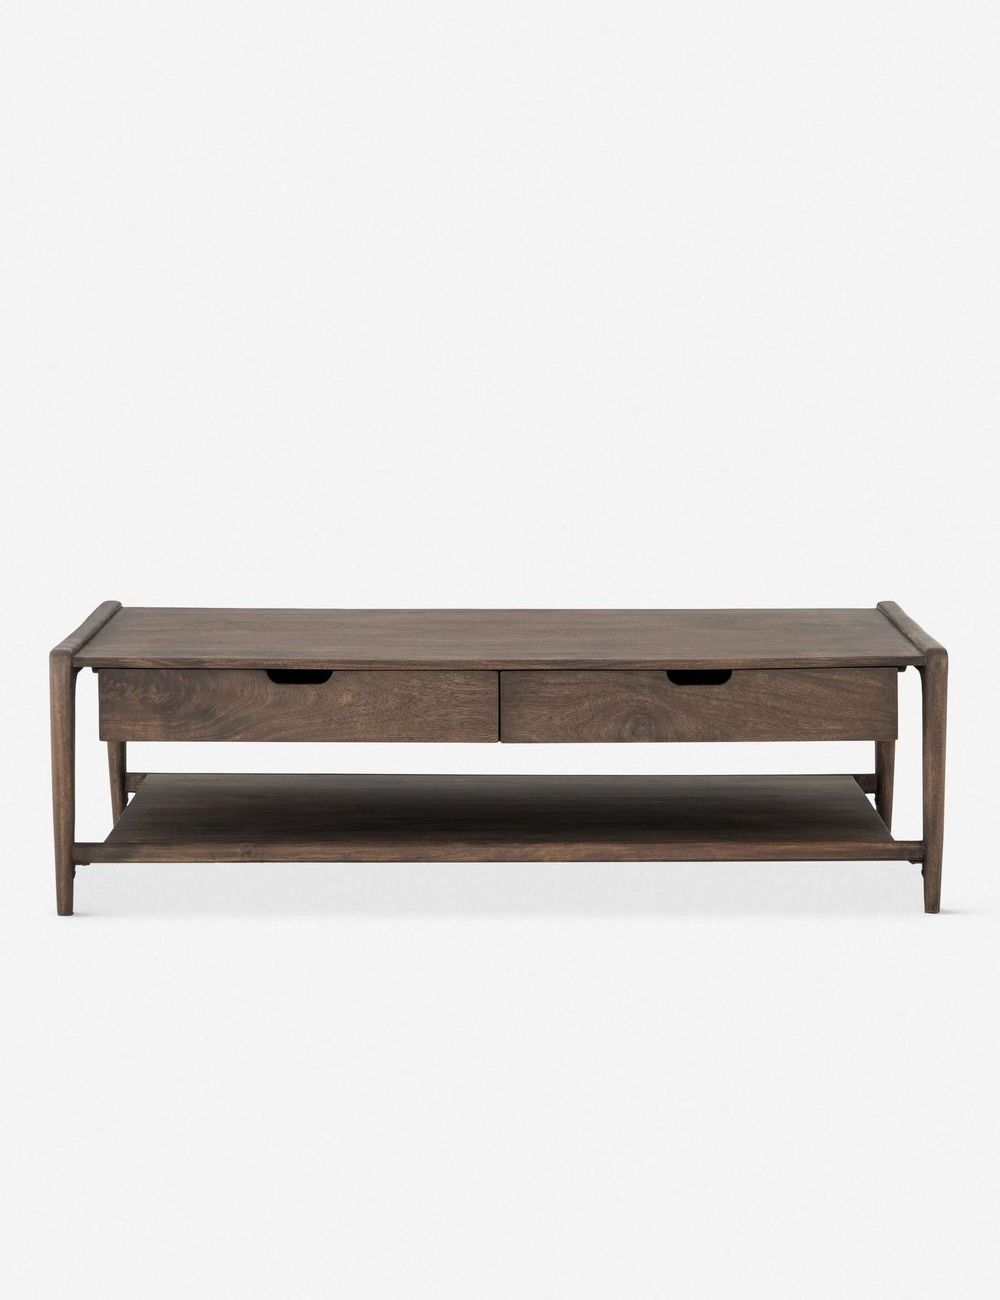 Chaya Coffee Table Coffee Table Wood Coffee Table Wooden Coffee Table [ 1300 x 1000 Pixel ]